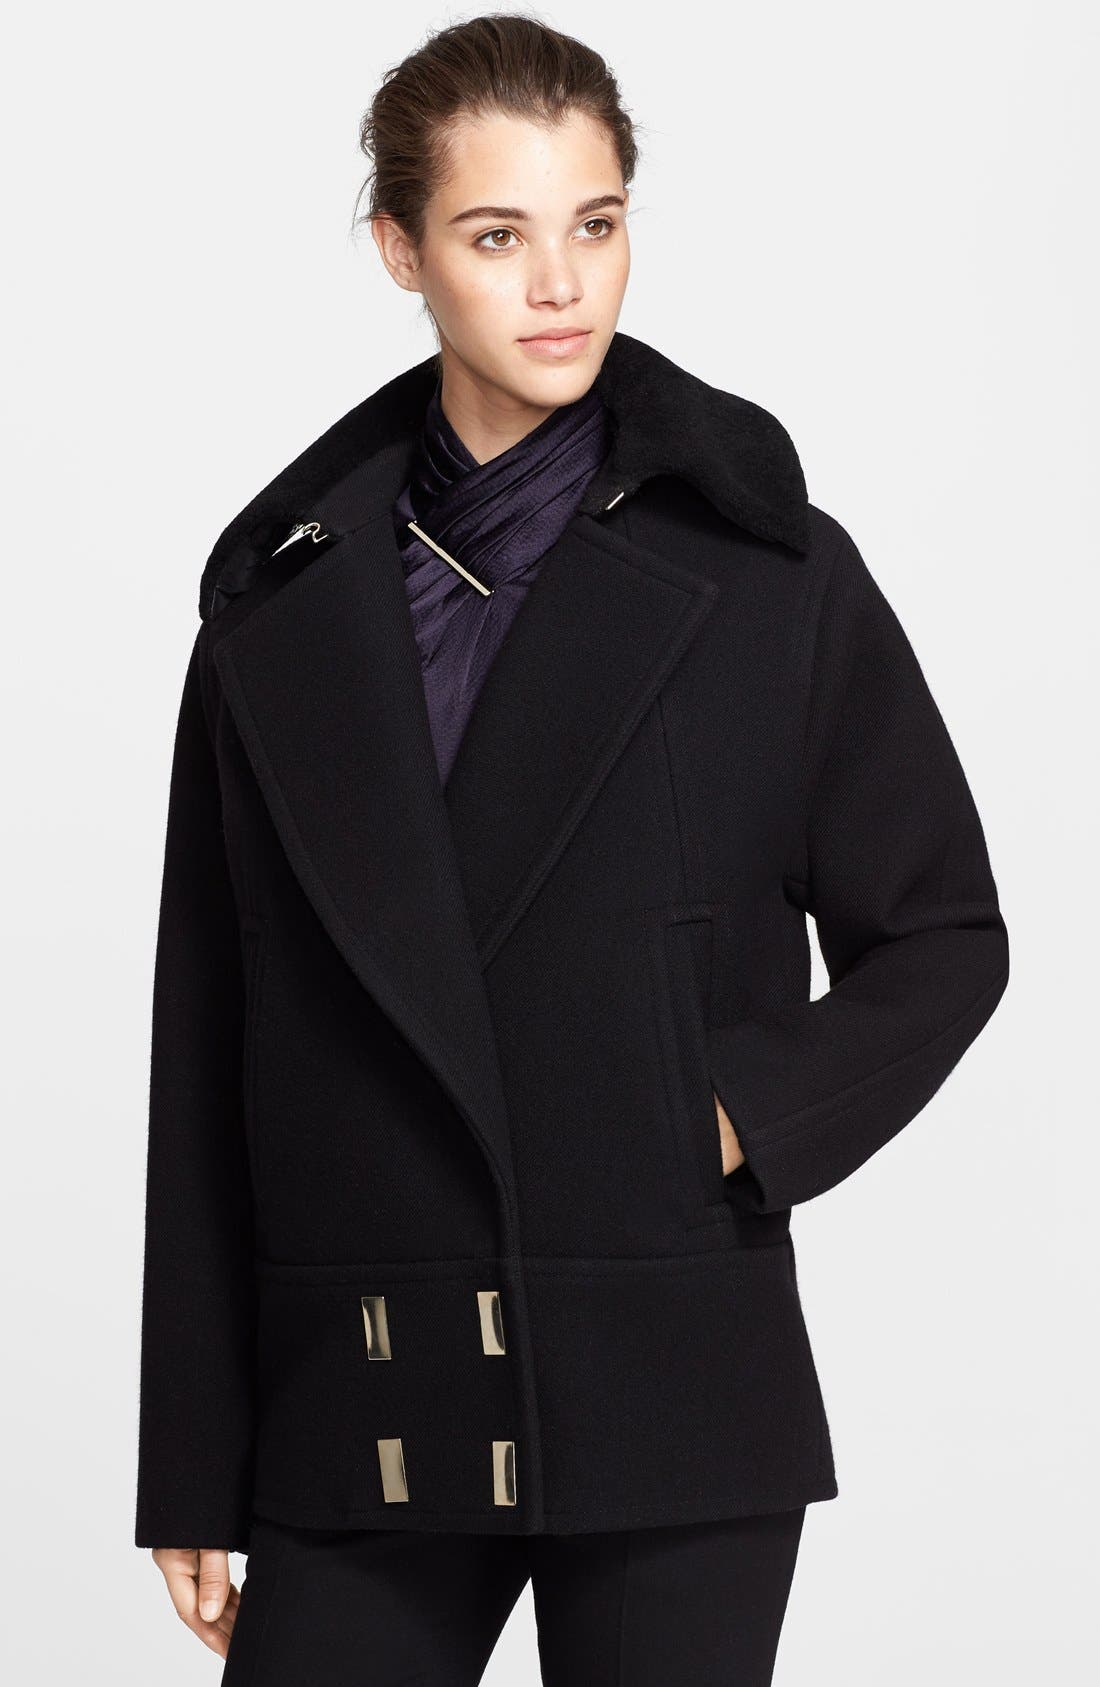 Main Image - Jason Wu Felted Wool Blend Coat with Genuine Shearling Collar